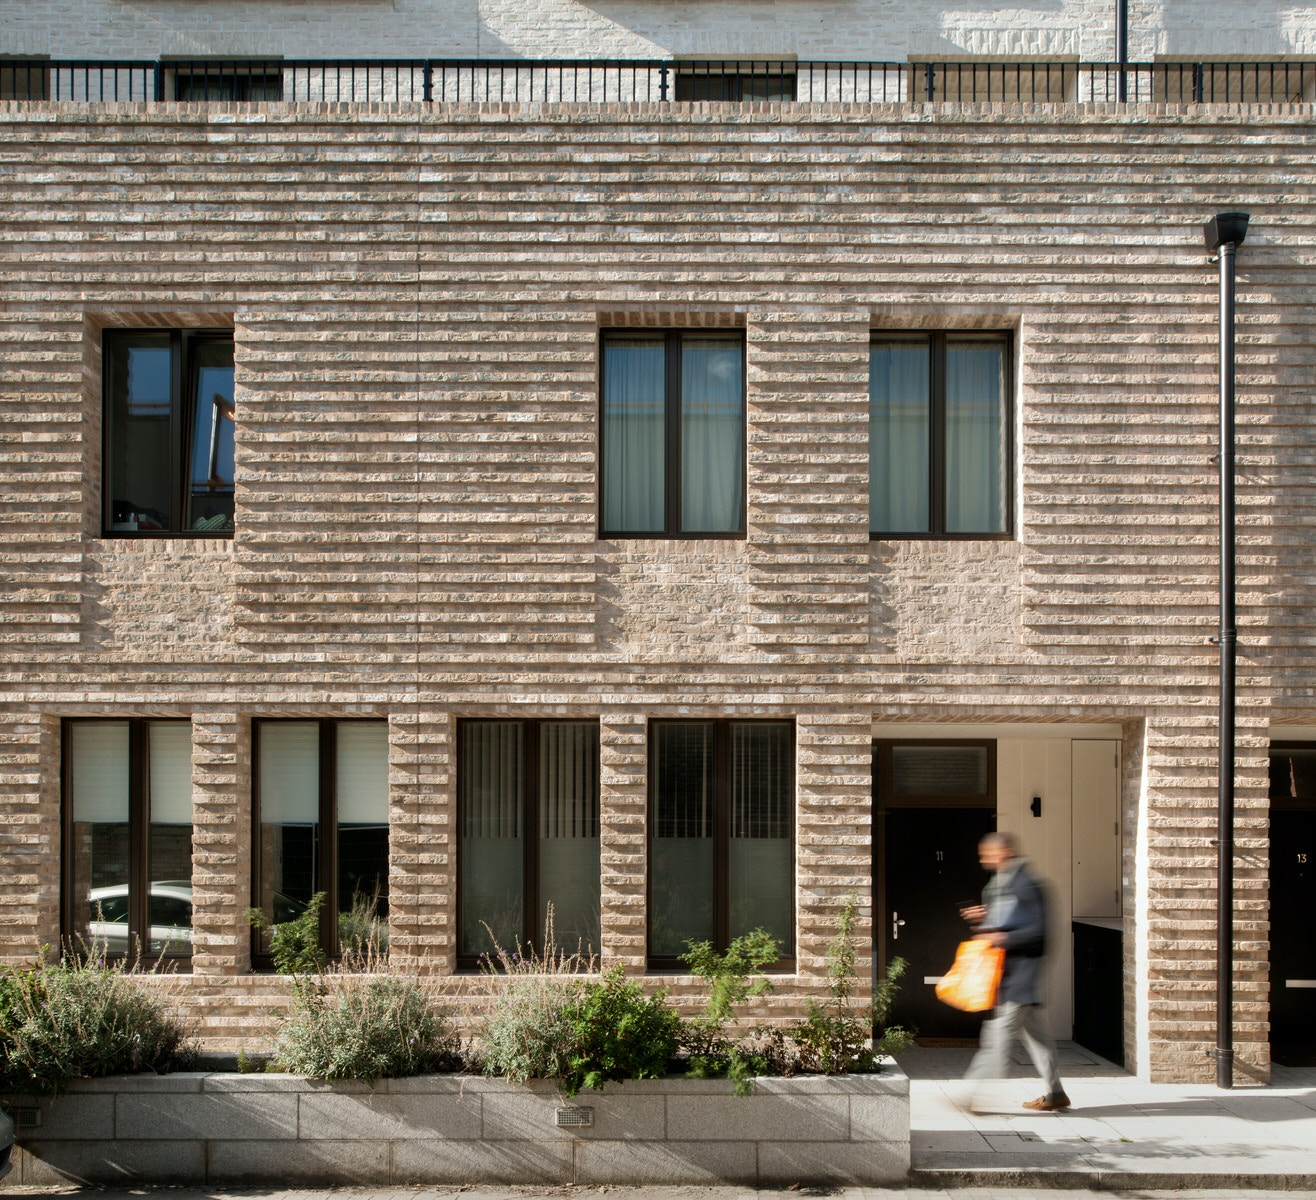 Cook Street Apartments: Silchester Housing